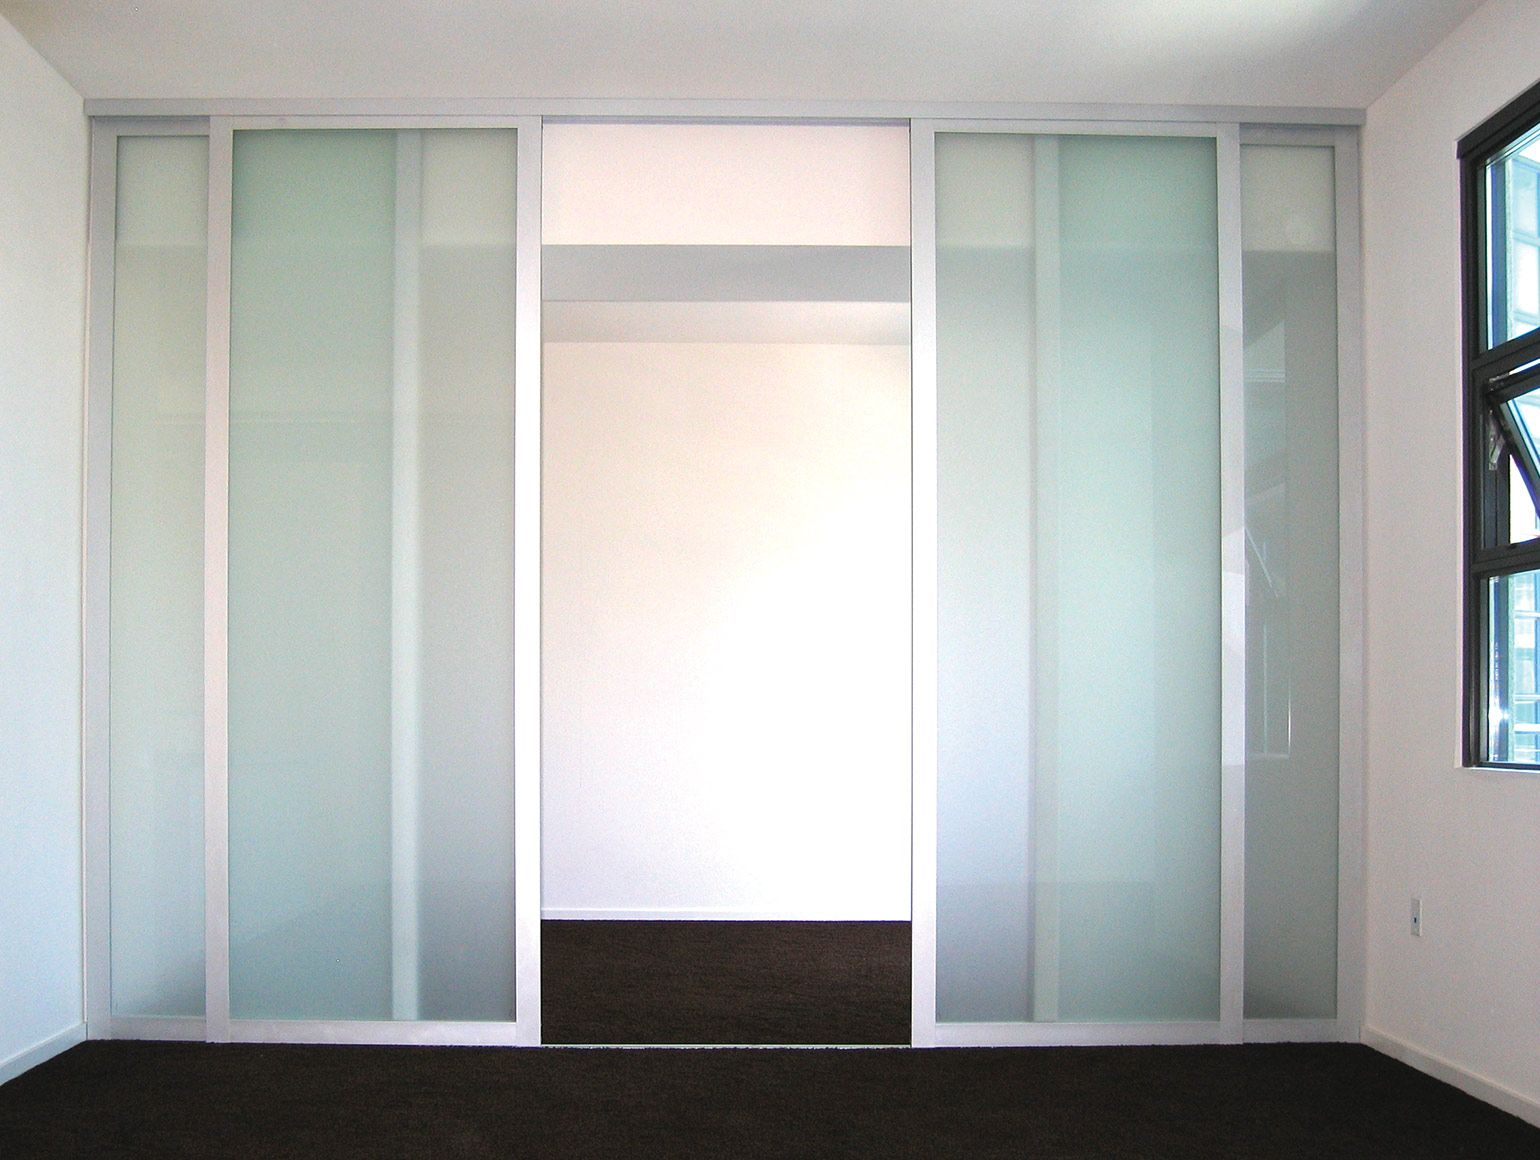 Frosted glass room dividers easily divide one room into two rooms. Double  sliding glass doors Installed with silver frame finish. Made by The Sliding  Door ...